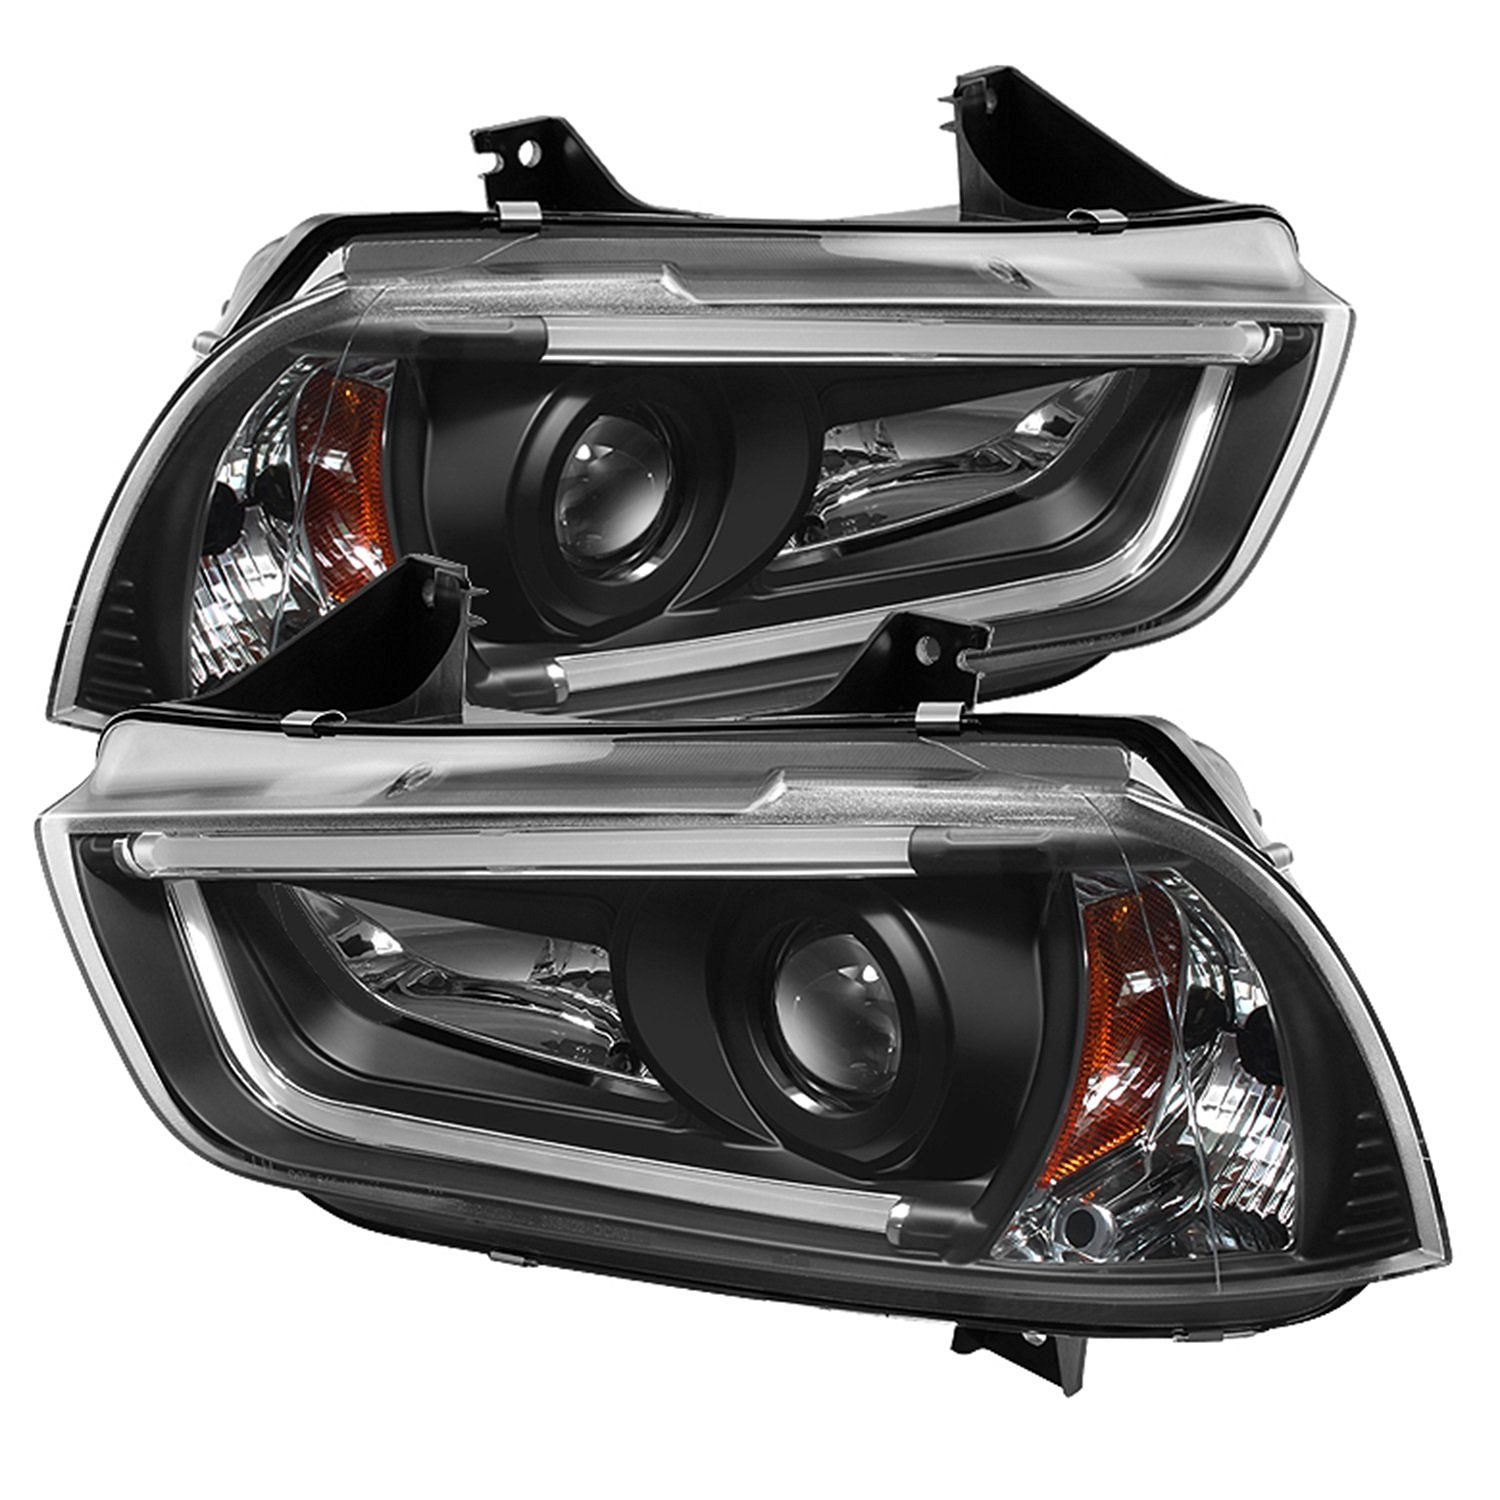 Spyder Auto (PRO-YD-DCH11-LTDRL-BK) Dodge Charger Projector Headlight